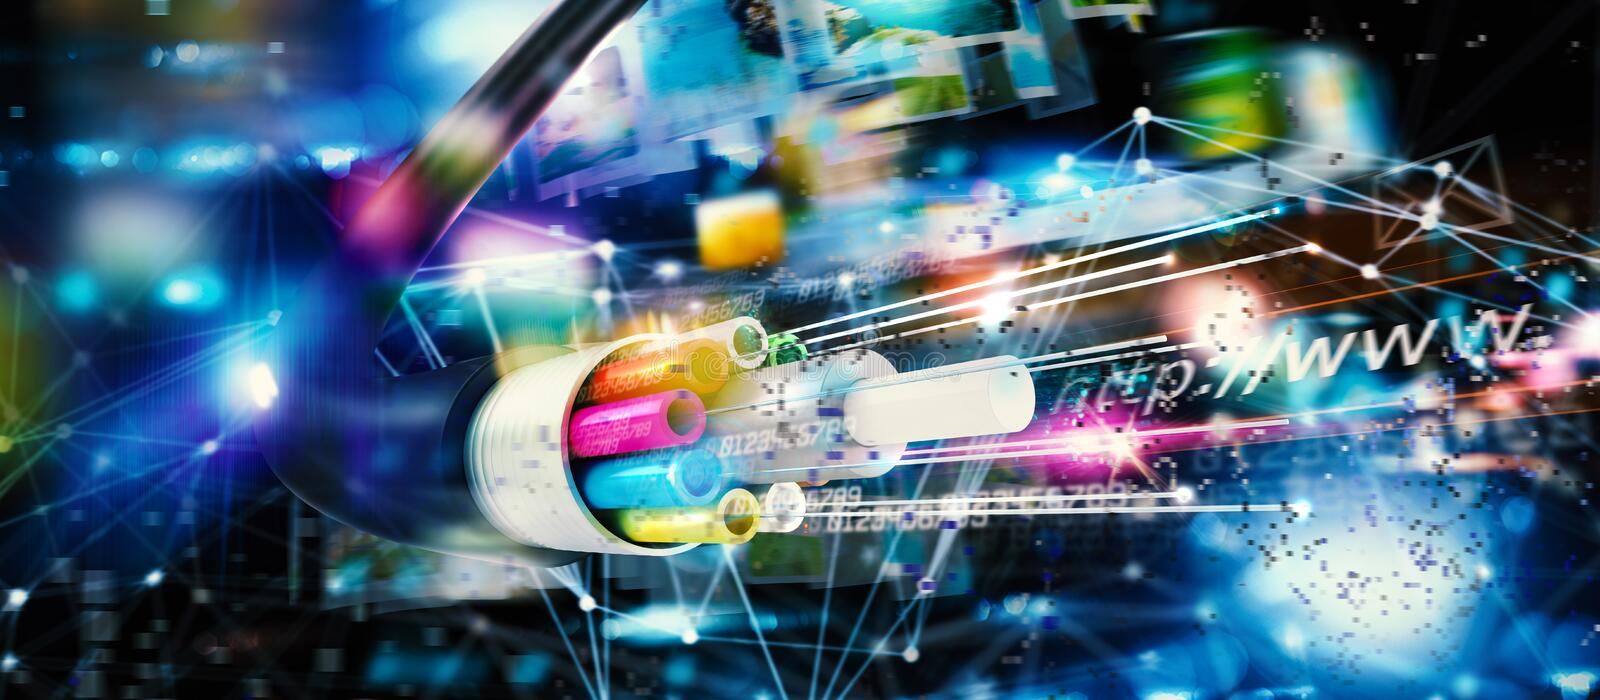 Fast internet connection with the optical fiber stock images